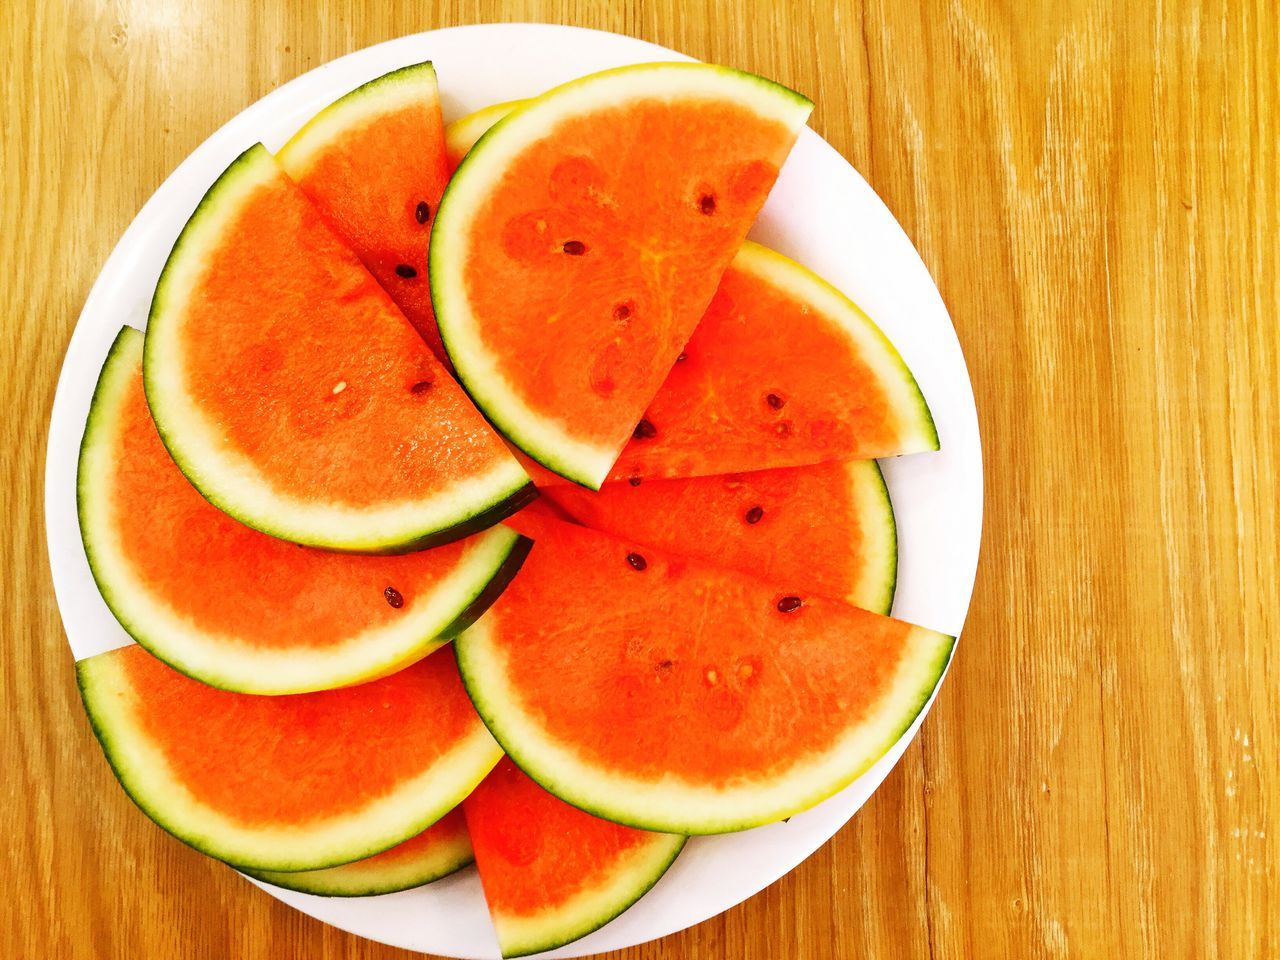 fruit, slice, food and drink, freshness, food, healthy eating, table, watermelon, indoors, cross section, close-up, healthy lifestyle, no people, directly above, plate, anthropomorphic face, ready-to-eat, day, blood orange